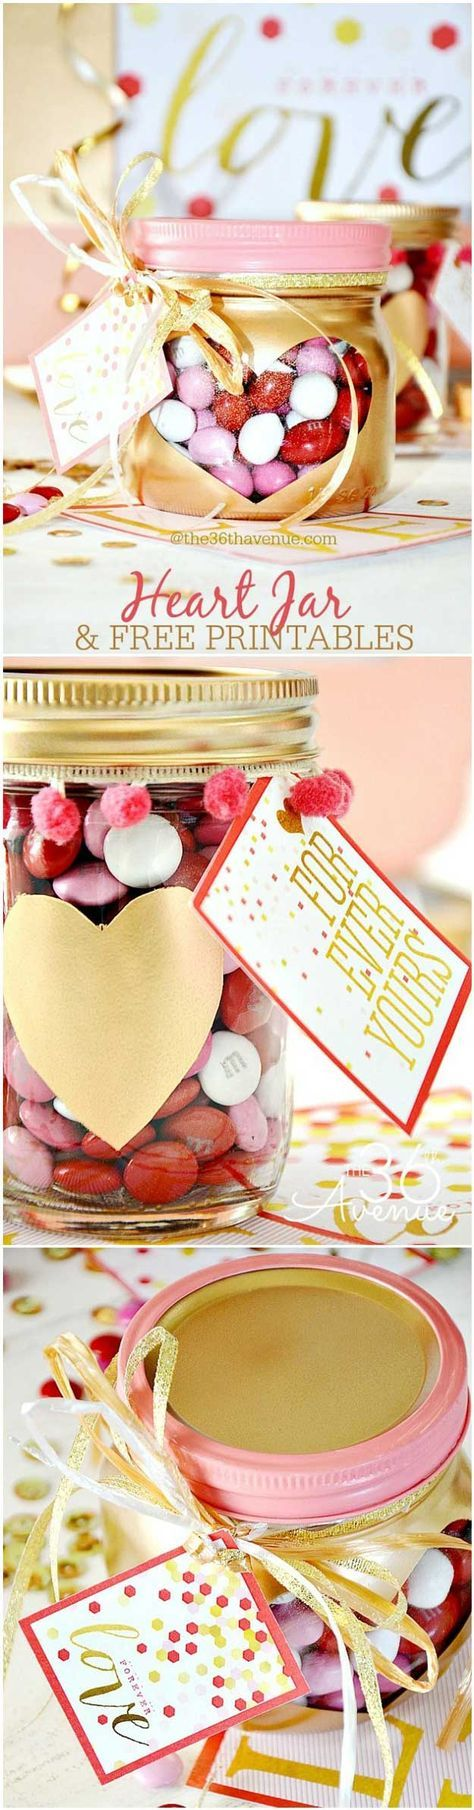 54 mason jar valentine gifts and crafts cute valentines day - Cute Things For Valentines Day